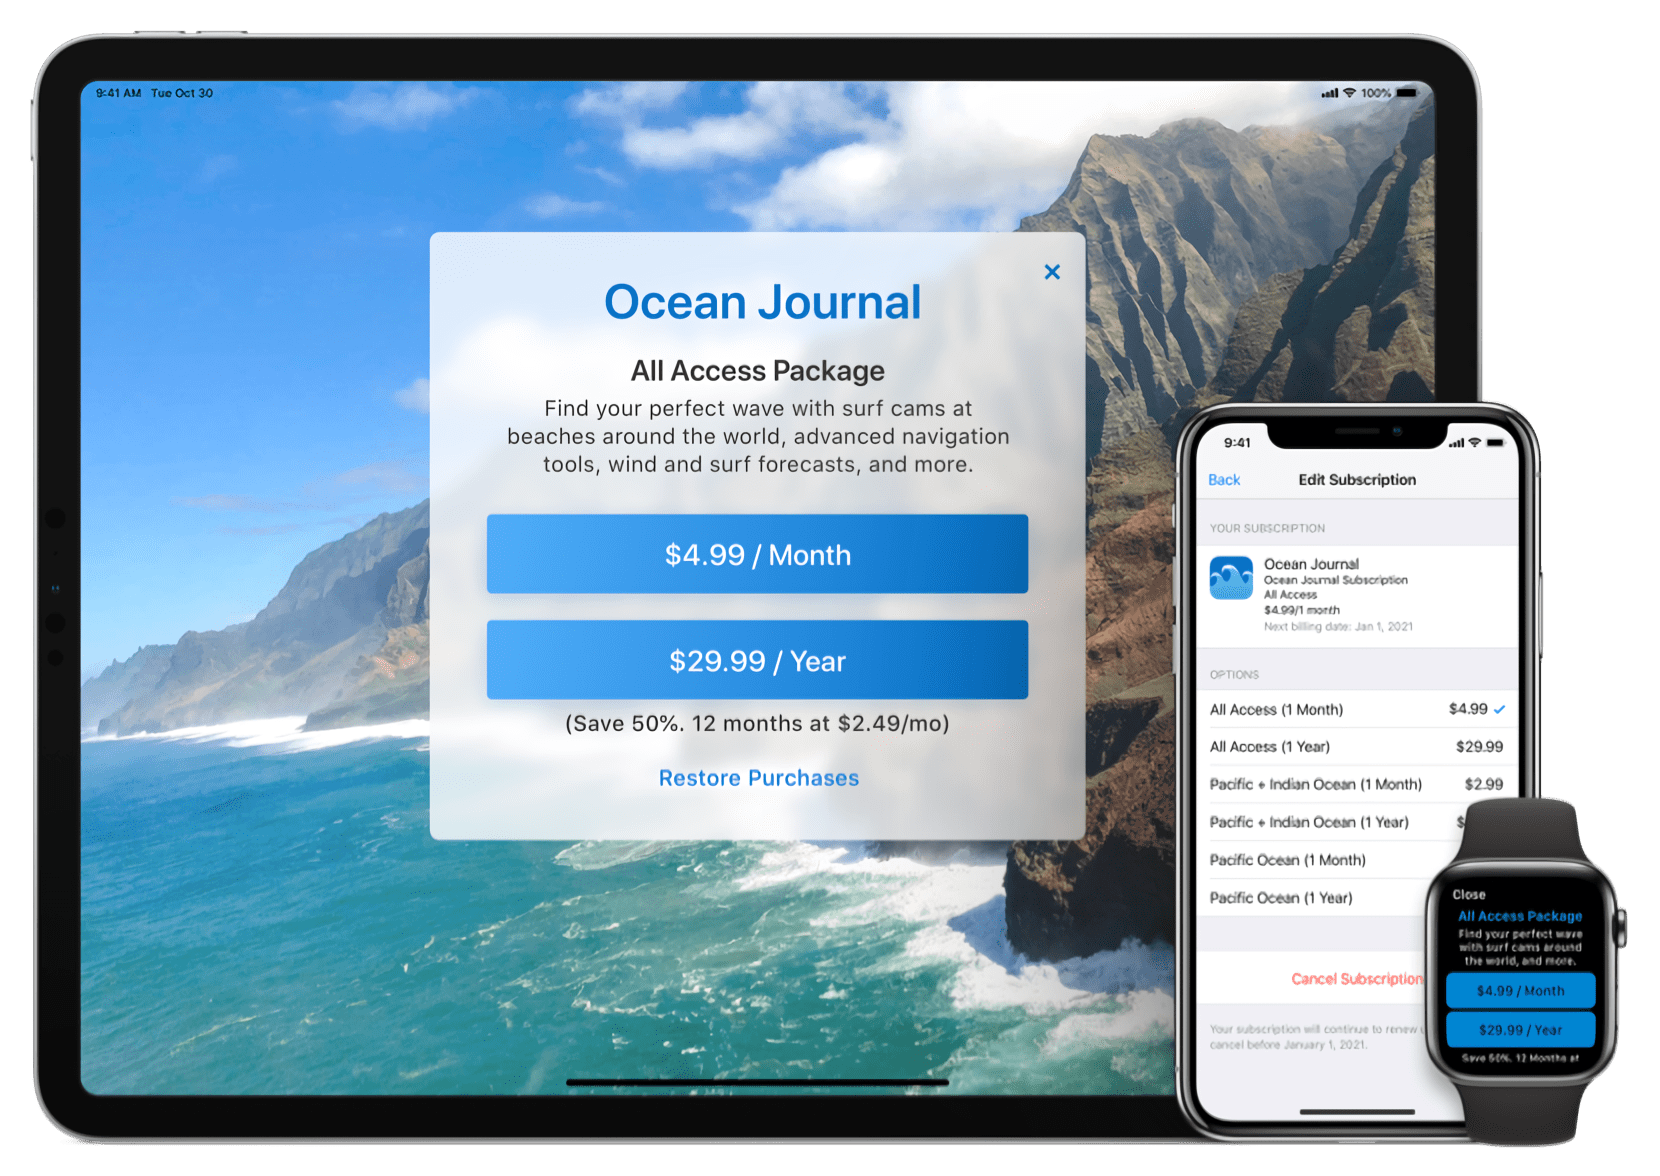 iOS 14 will give app developers ability to generate free or discounted subscription codes